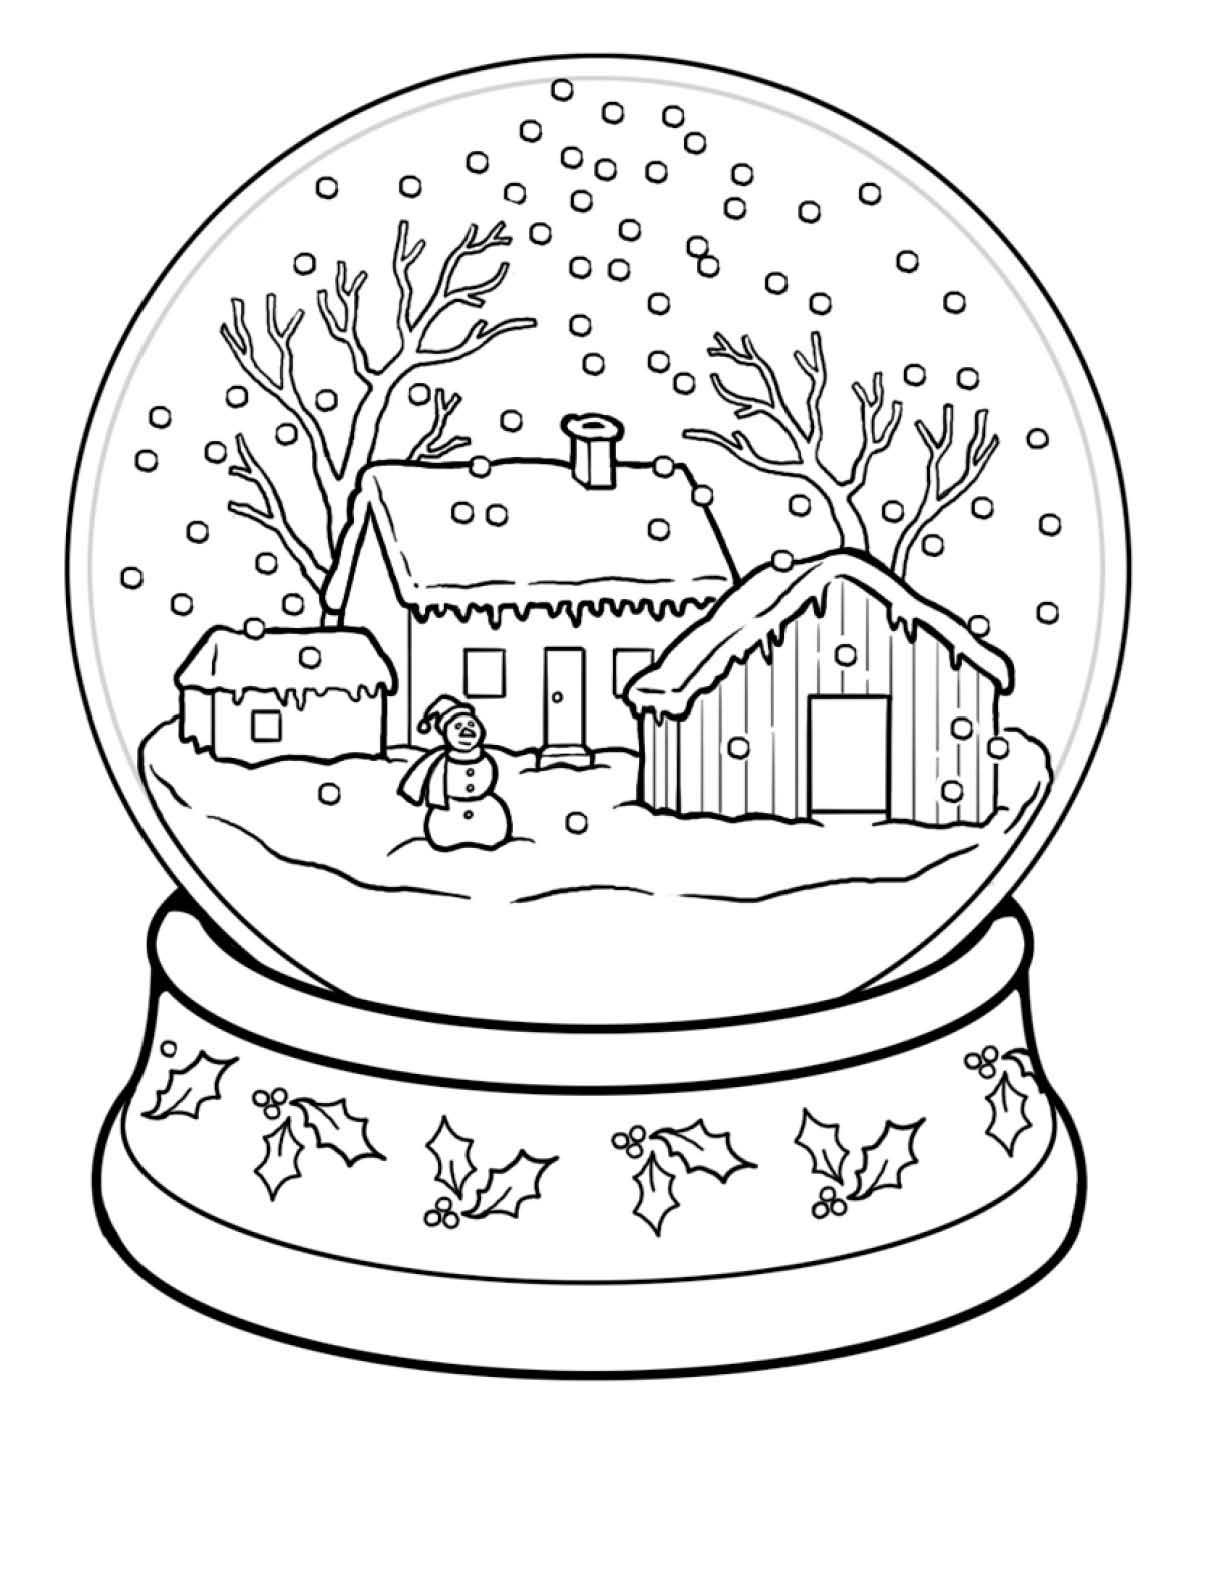 snow globe coloring page snow globe coloring pages for kids colours drawing wallpaper globe coloring page snow